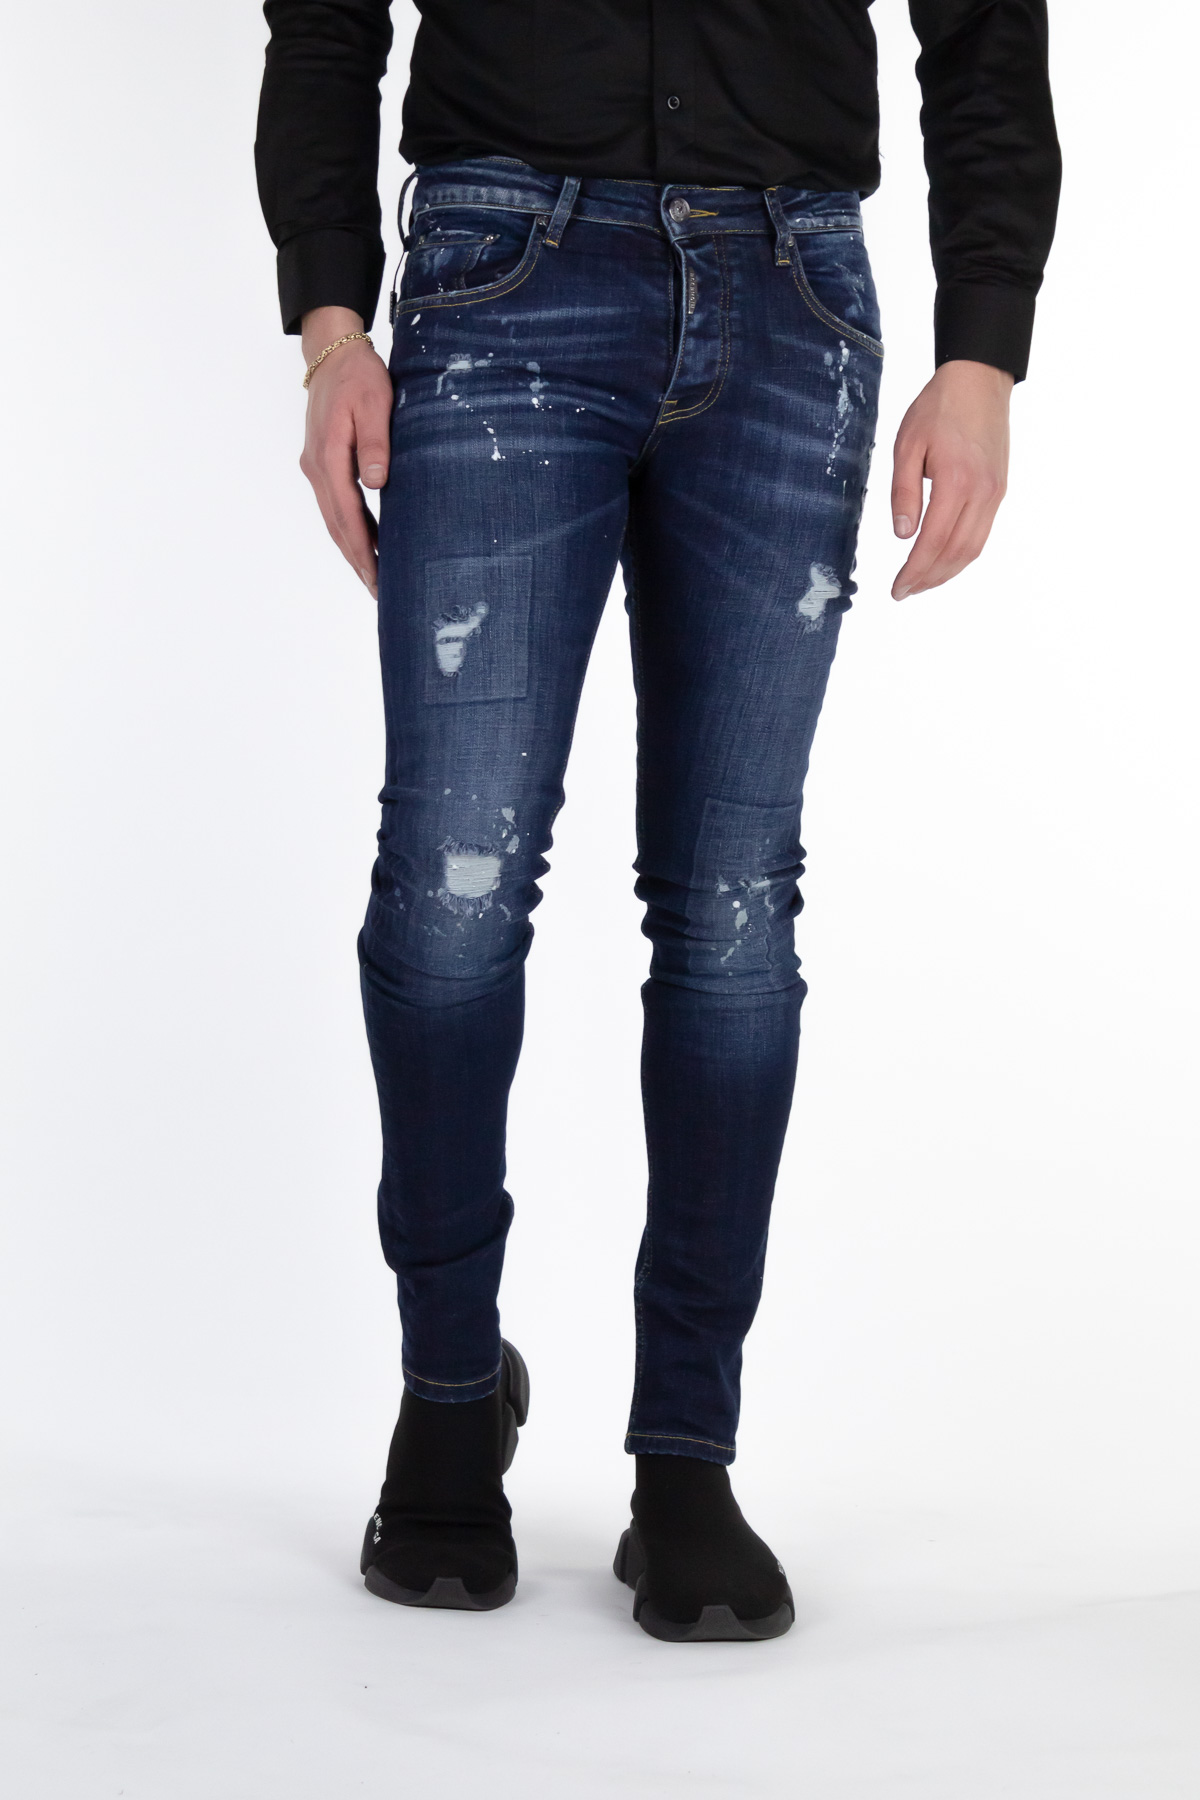 Richesse Florence Blue Jeans 2236-1